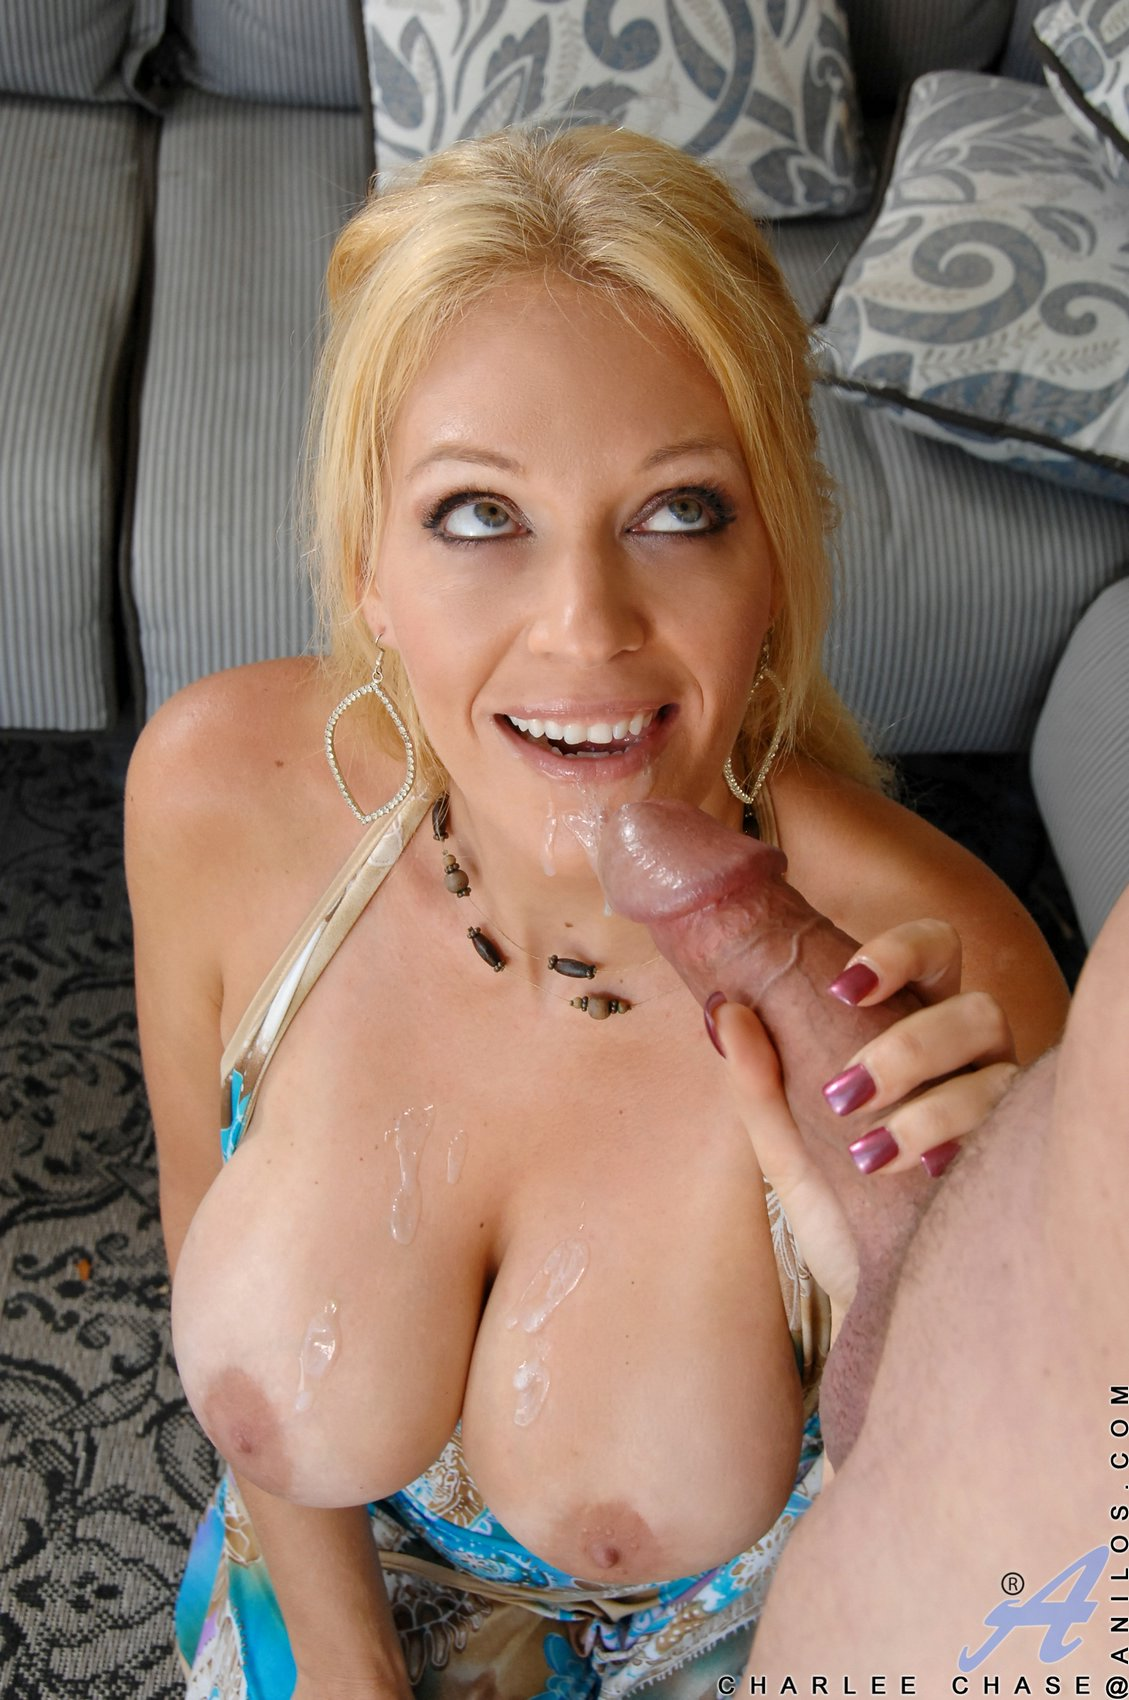 Charlee chase fuck